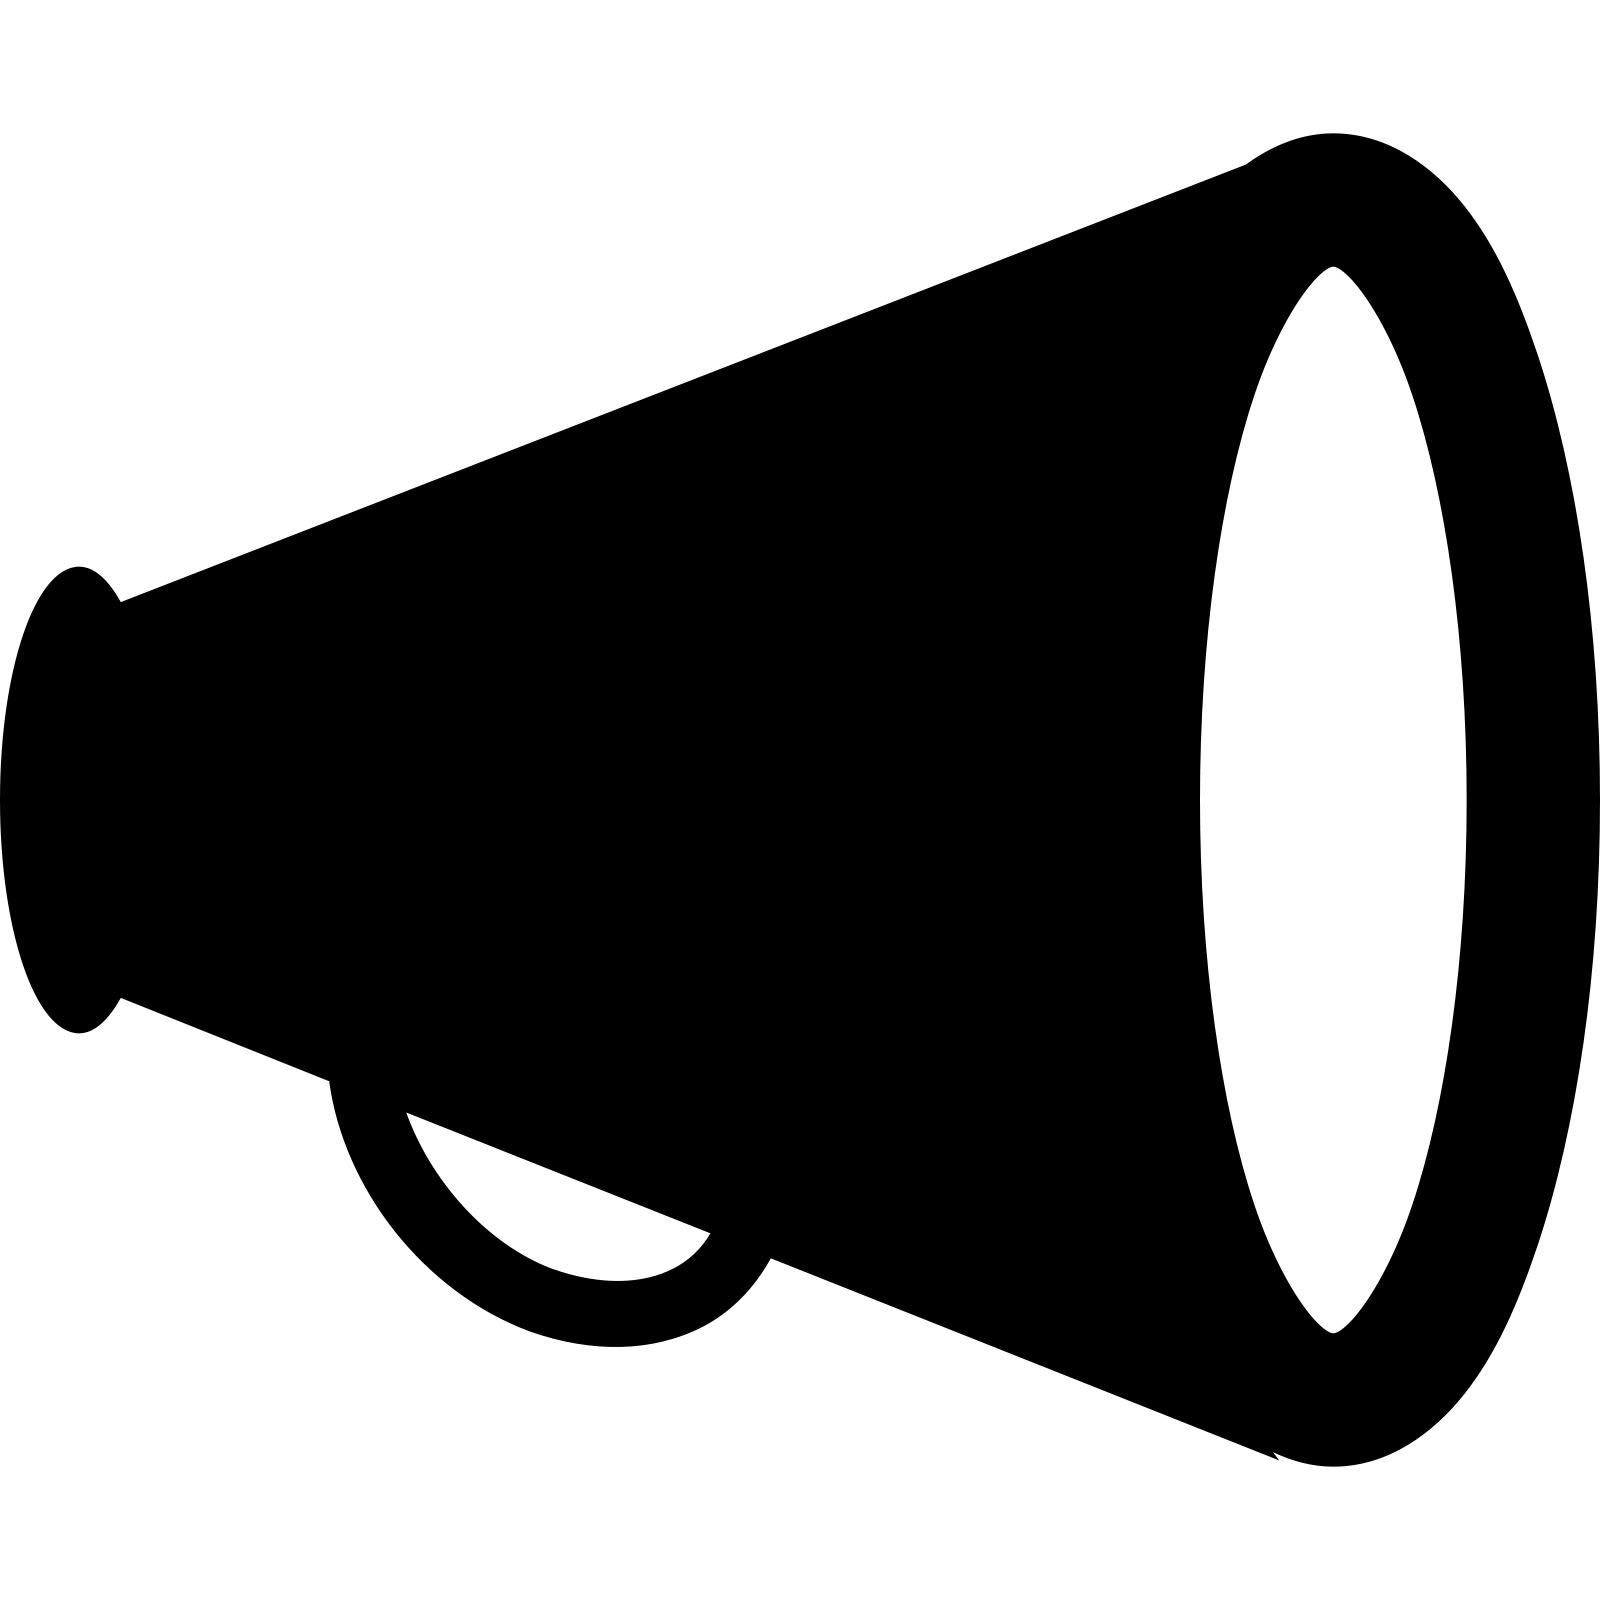 Megaphone clipart free png. Announcement transparent announcementpluspngcom